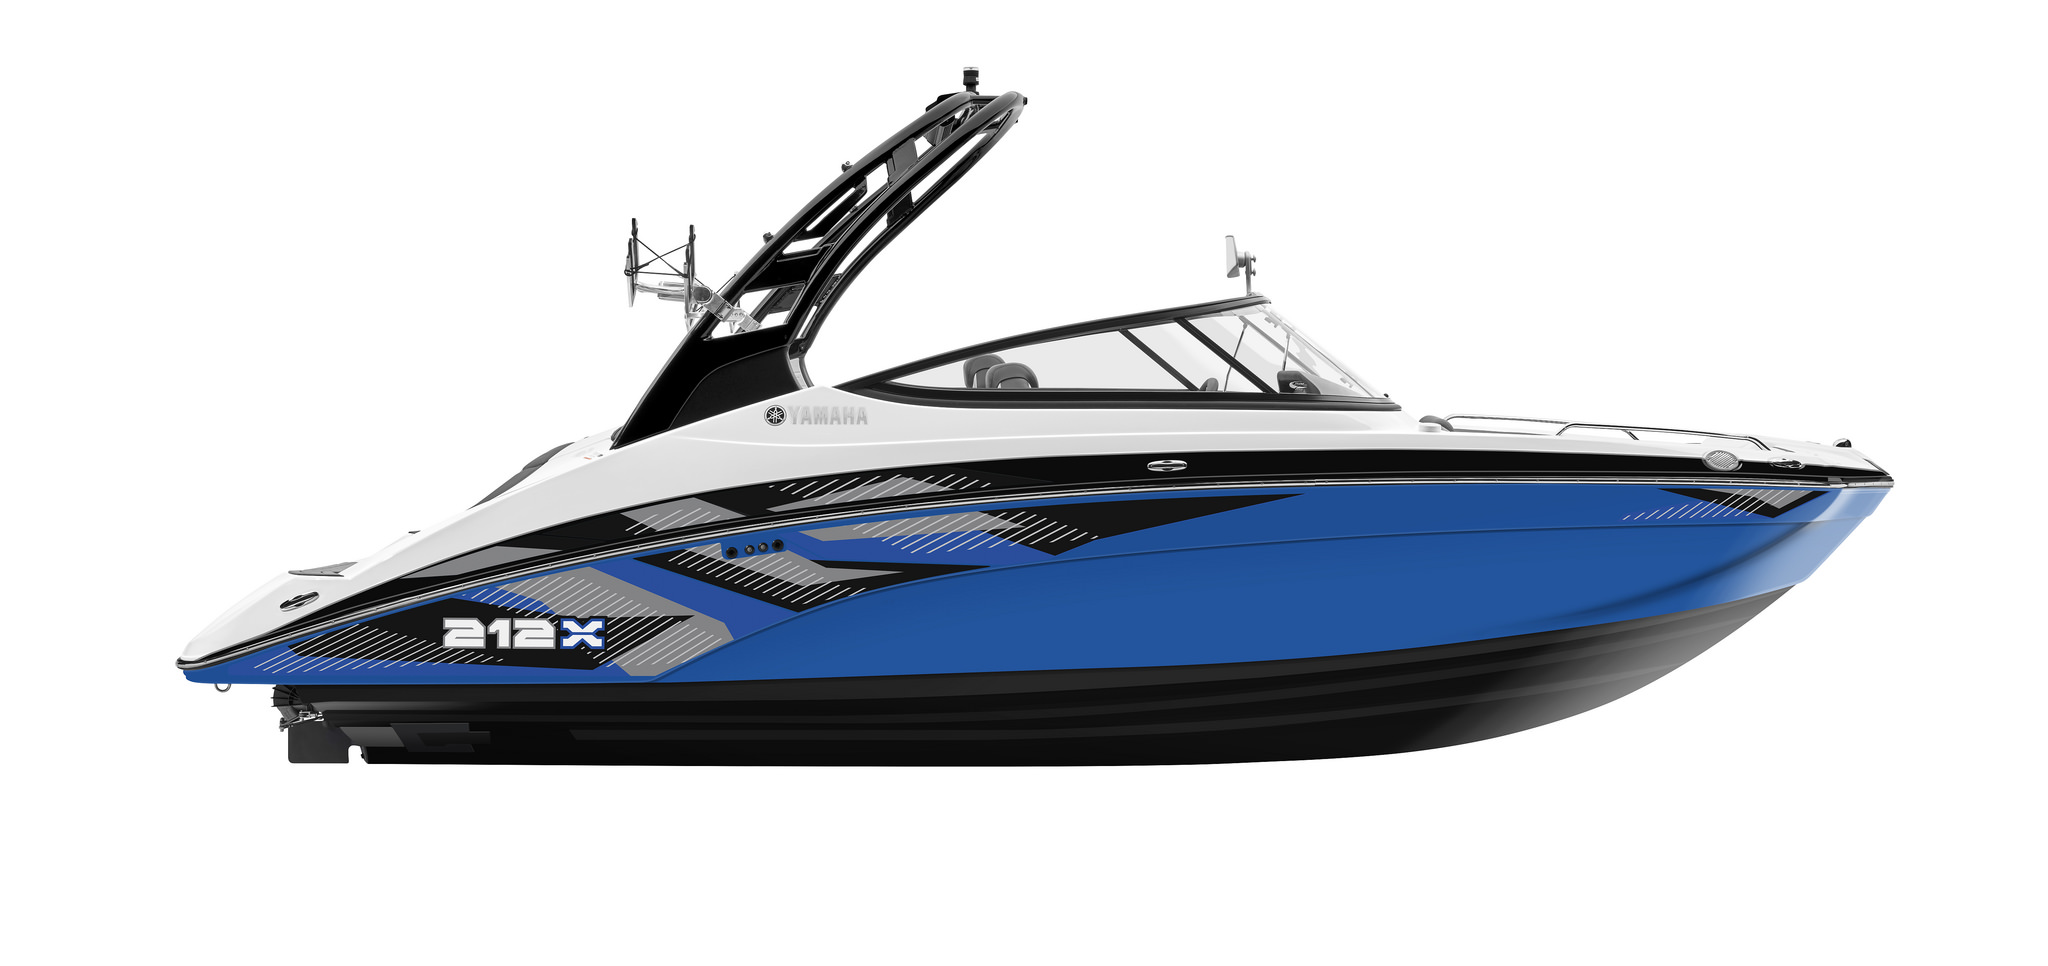 Yamaha 212x Ski And Wakeboard Boat Boats For Sale Boats Com